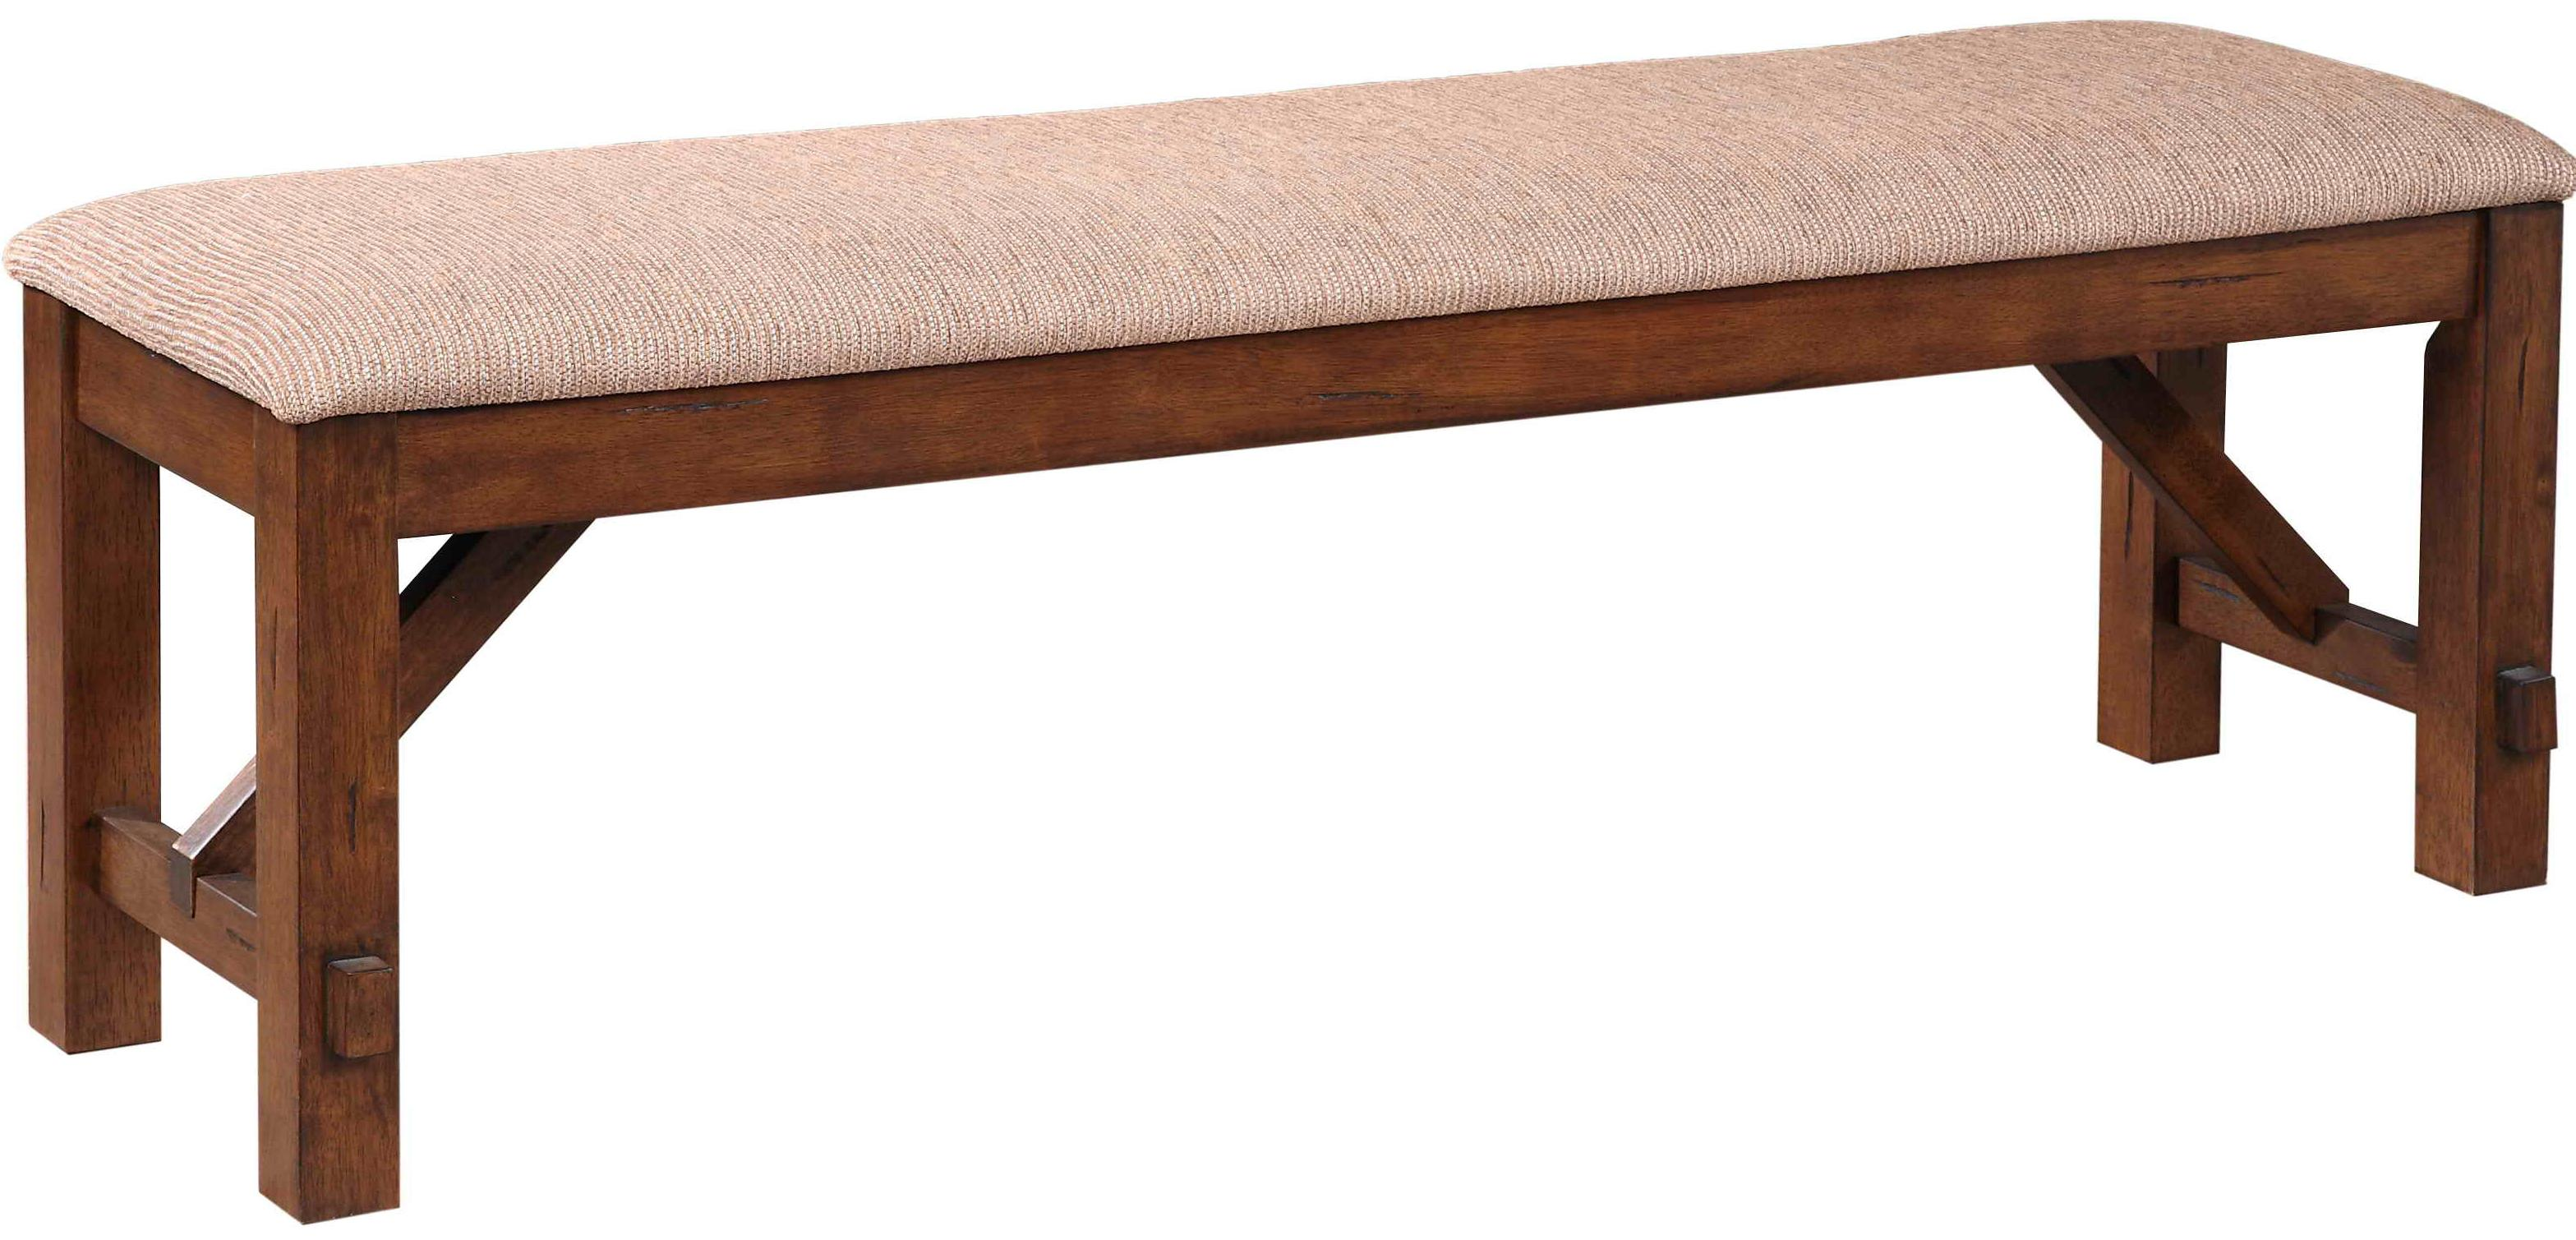 Powell Kraven Dining Bench - Item Number: 713-260